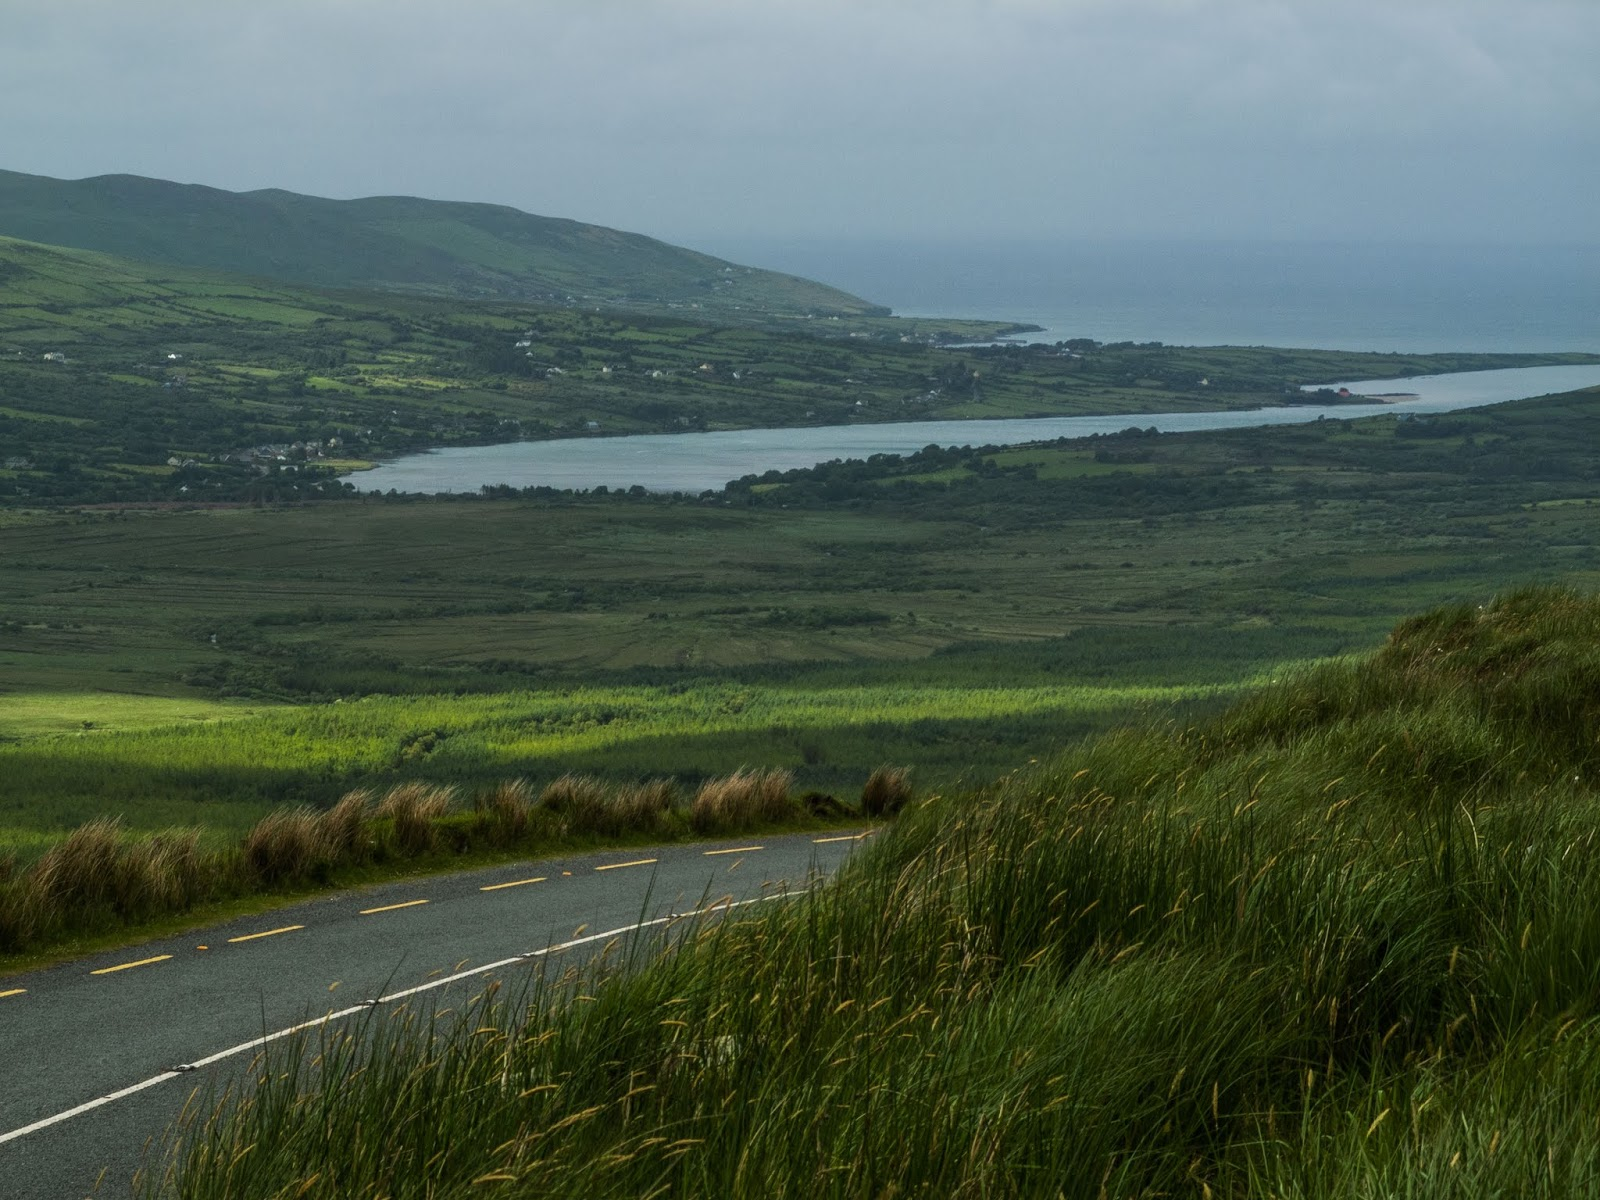 Side road views from the R560 on the way to Conor Pass in County Kerry.